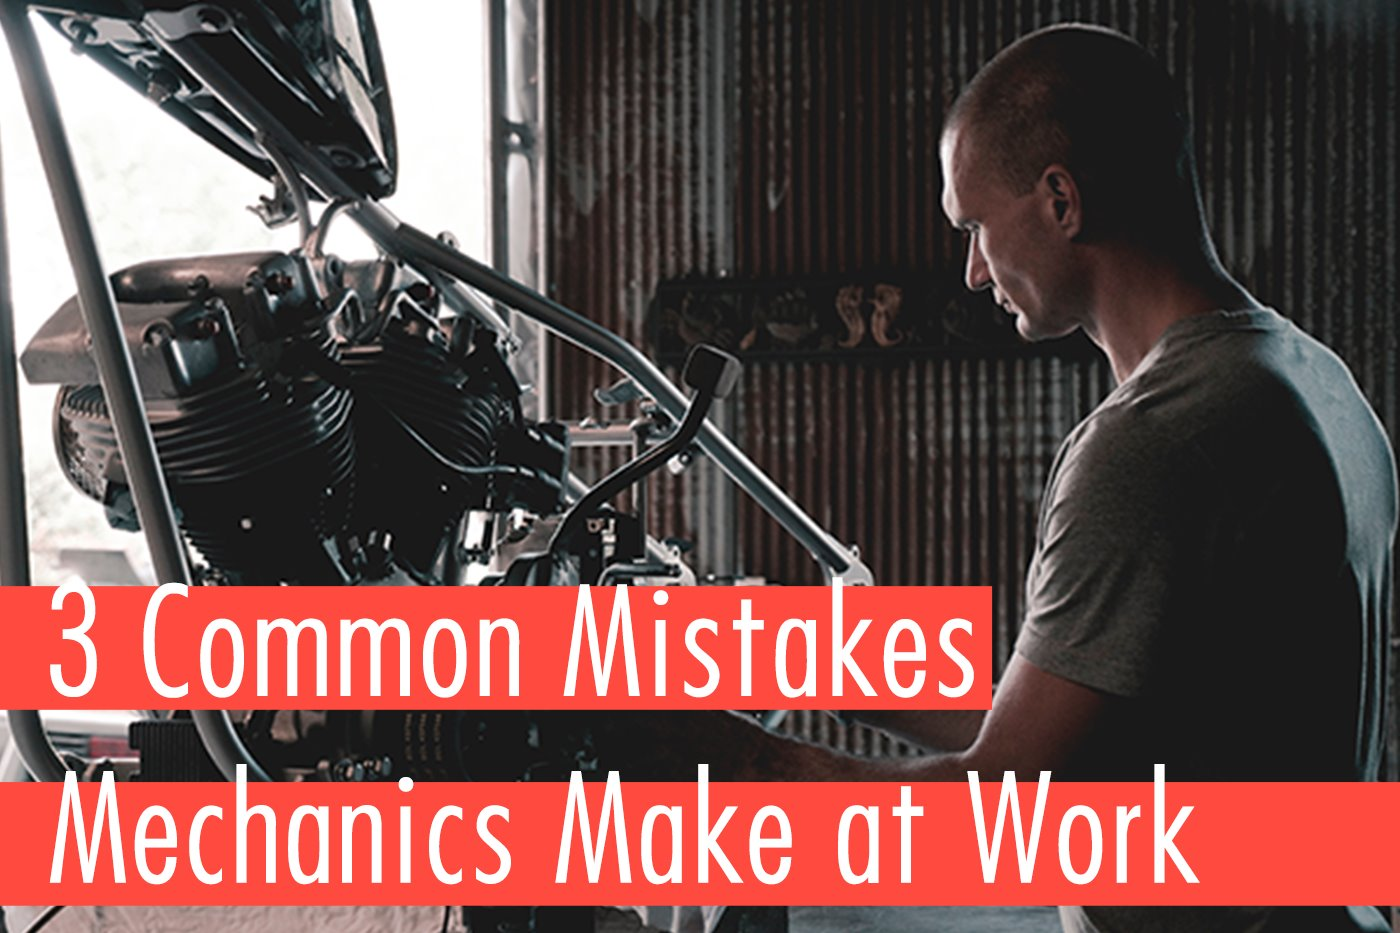 3 Common Dangers Mechanics Are Exposed To